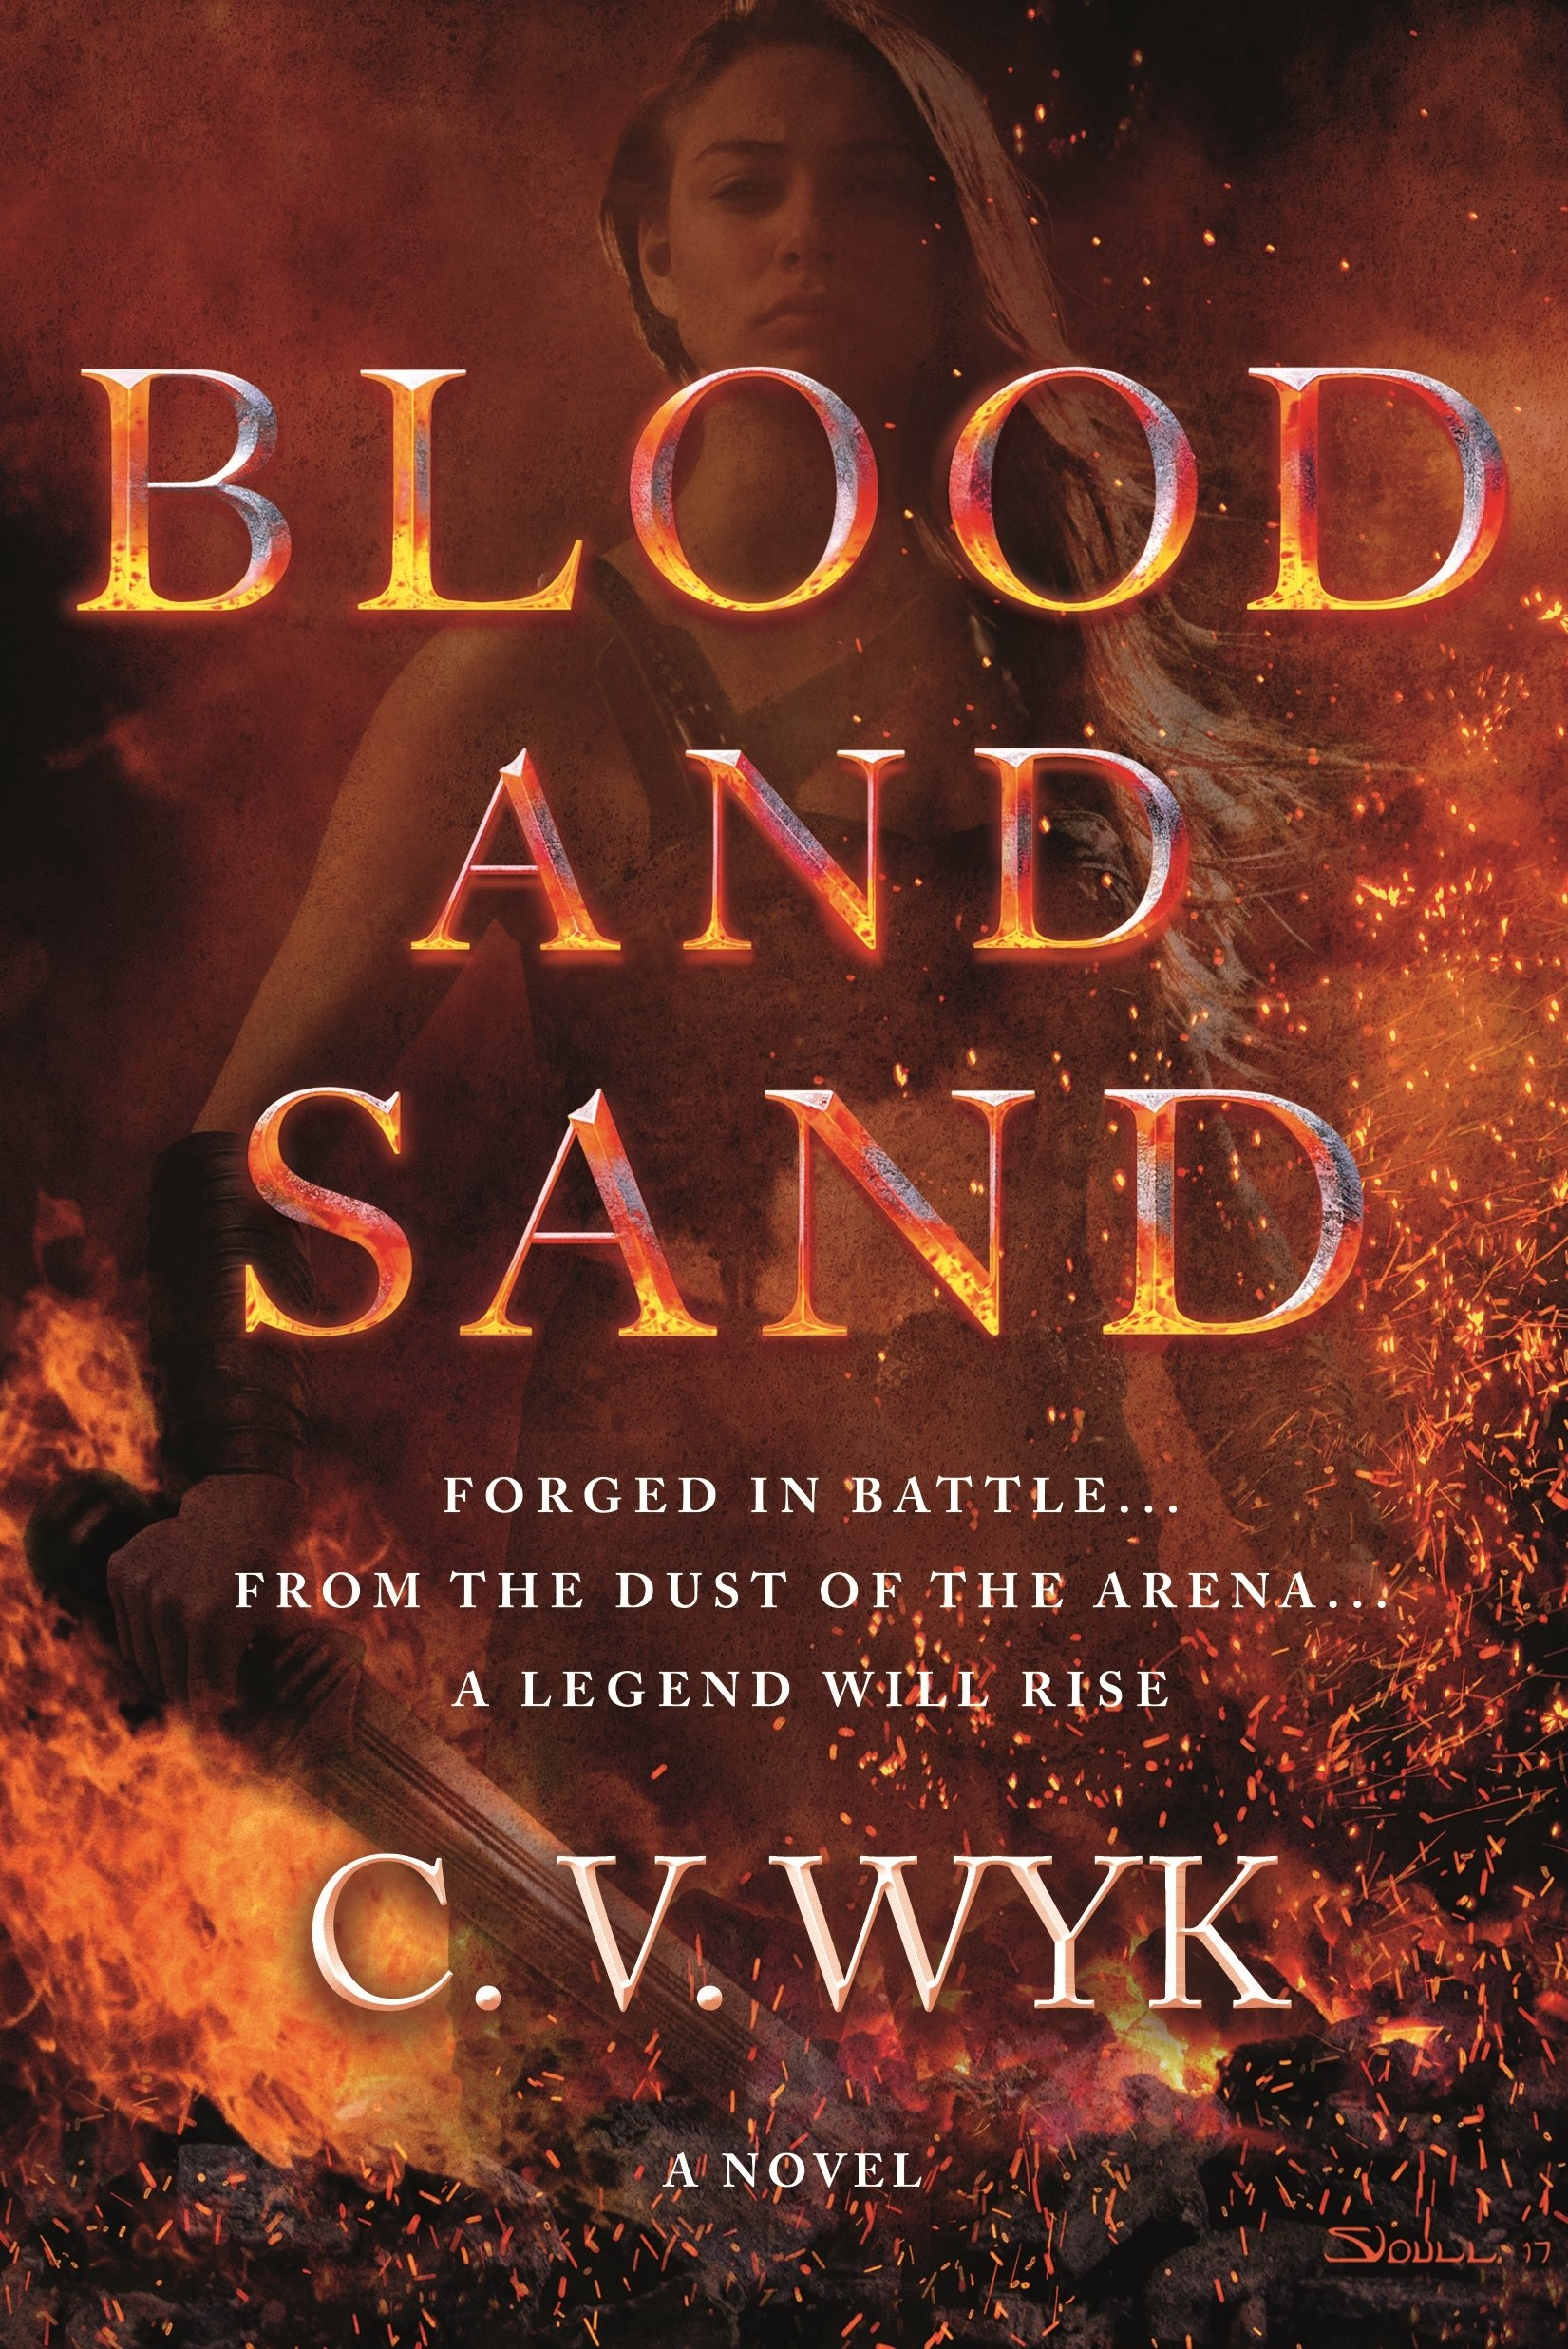 Image result for blood and sand book